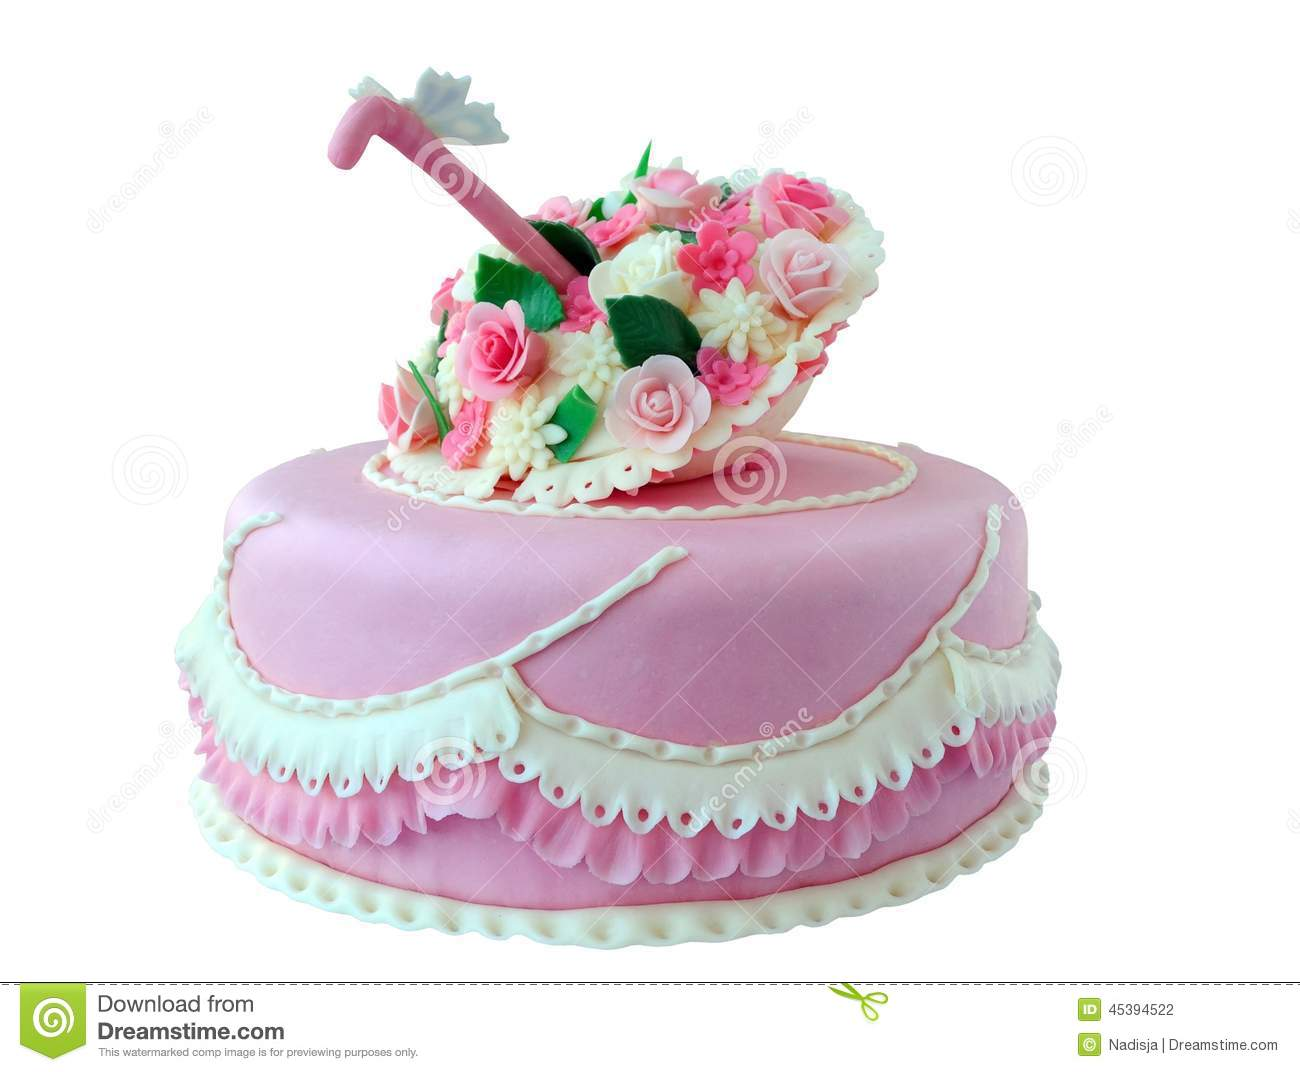 Pink Cake With Flowers And Butterfly Stock Photo Image Of Baked